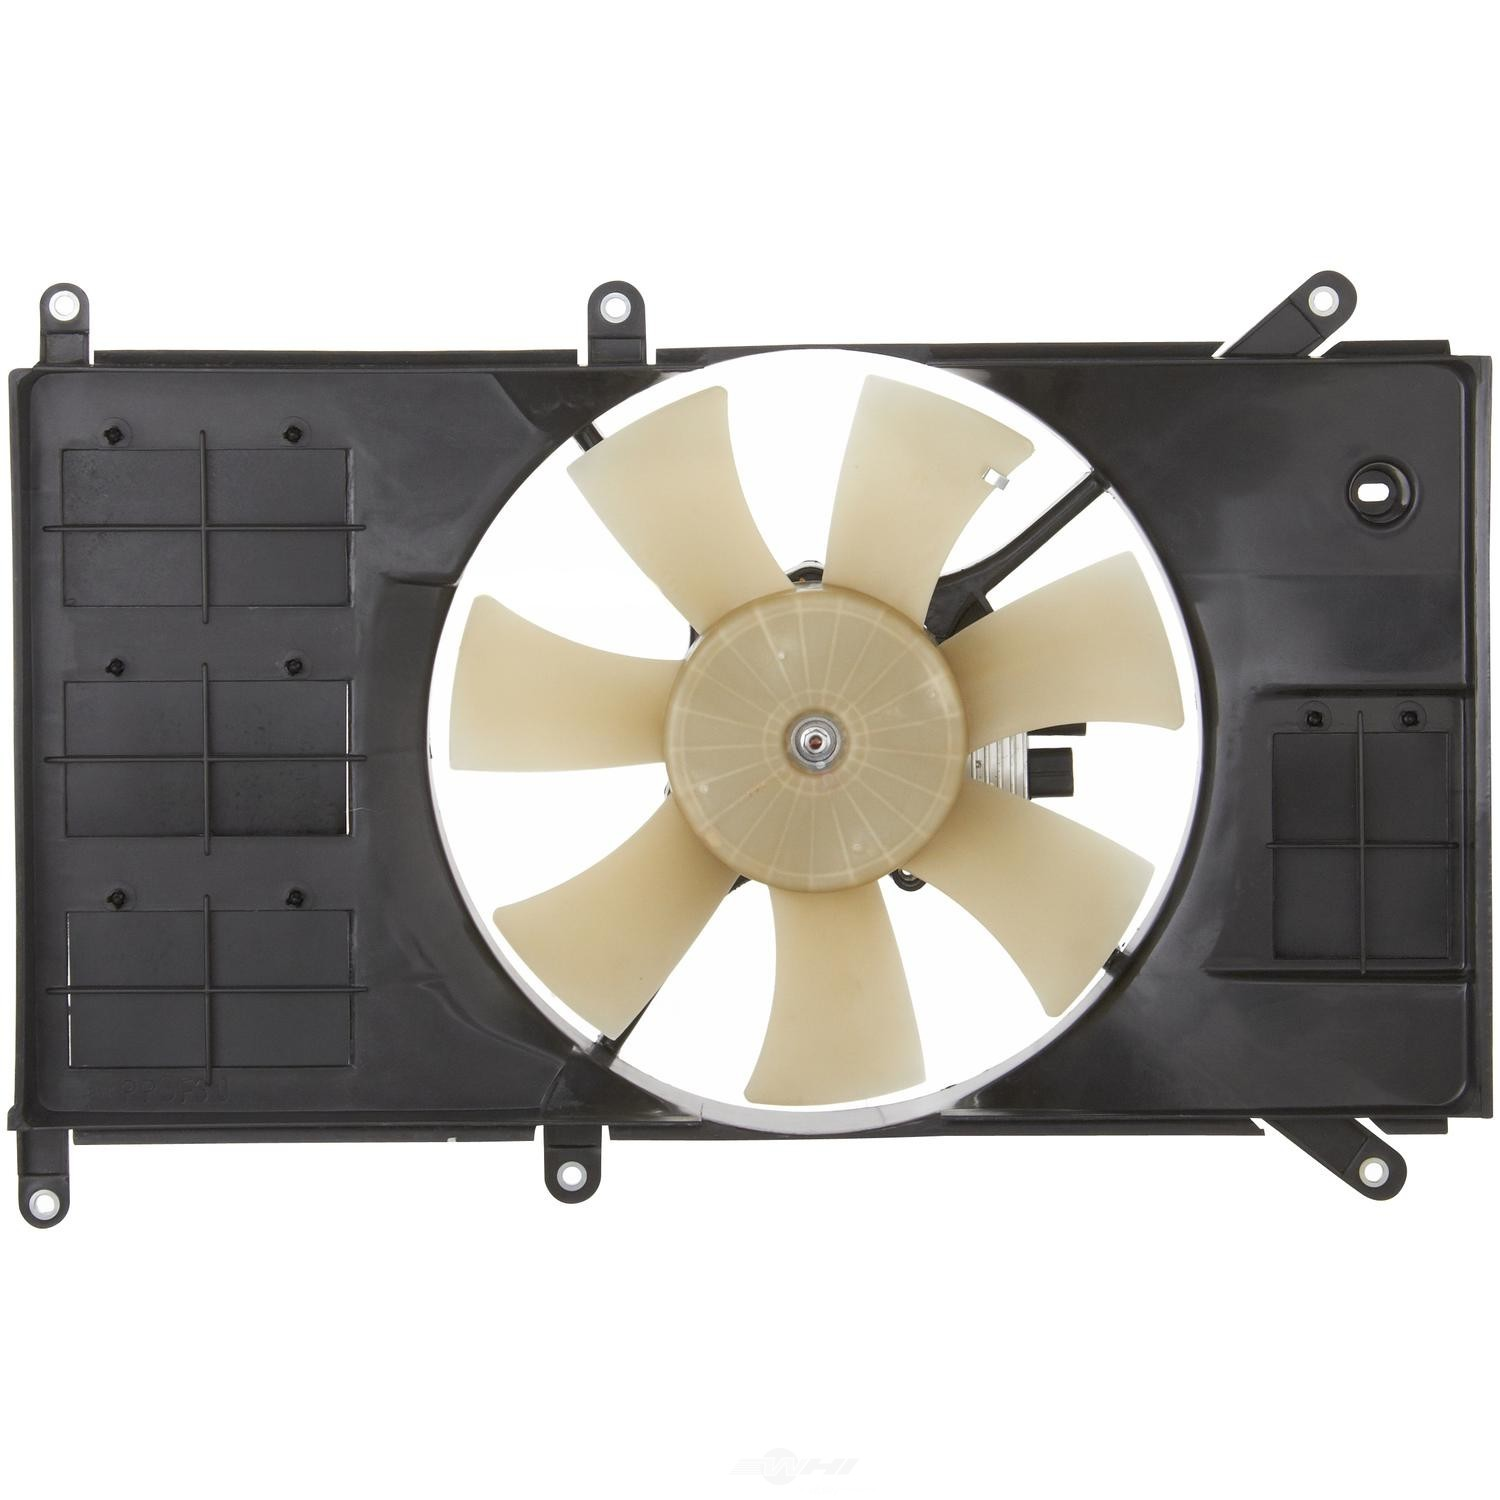 SPECTRA PREMIUM IND, INC. - Engine Cooling Fan Assembly - SPC CF22018